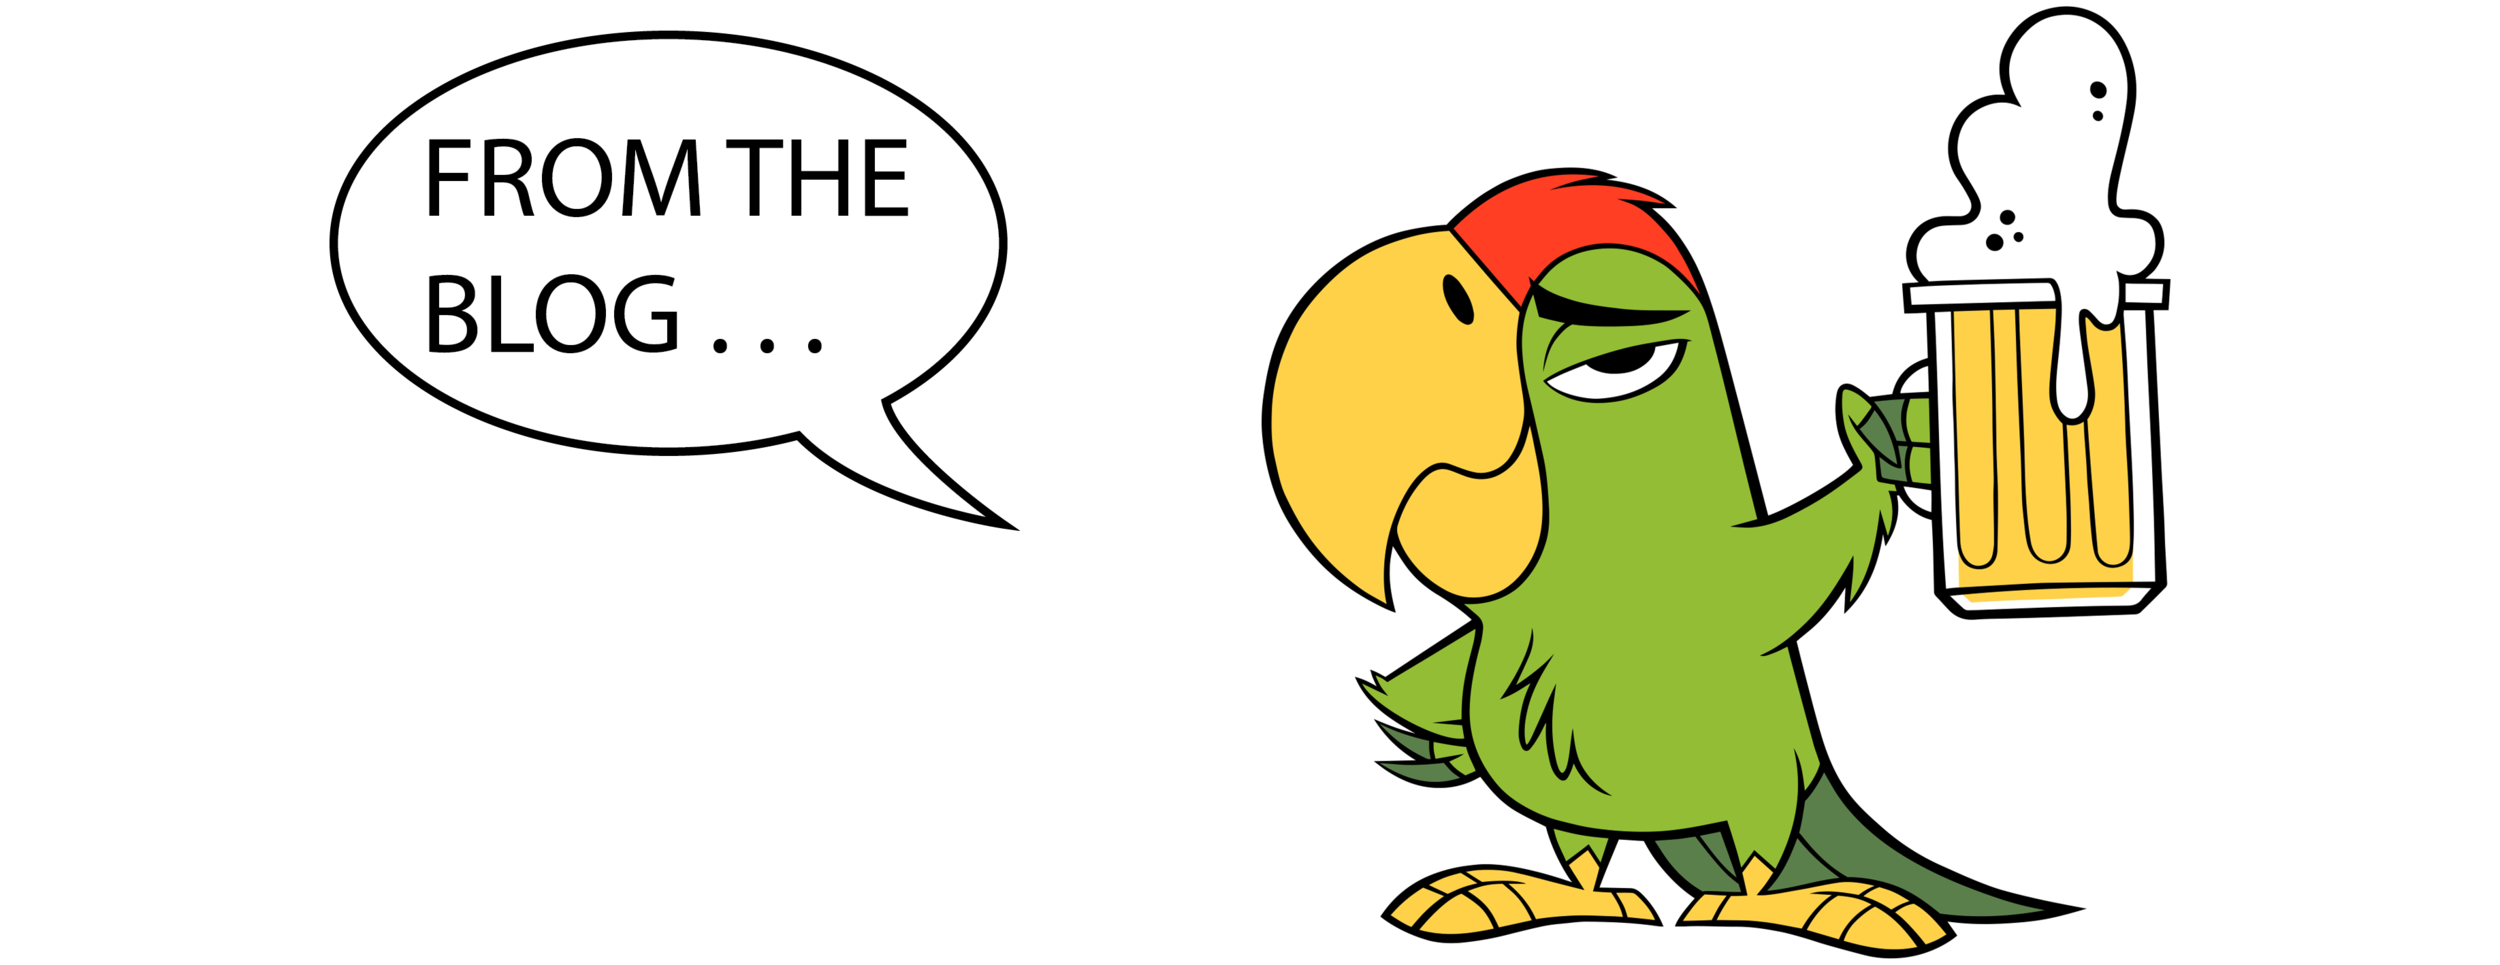 From the blog parrot.png